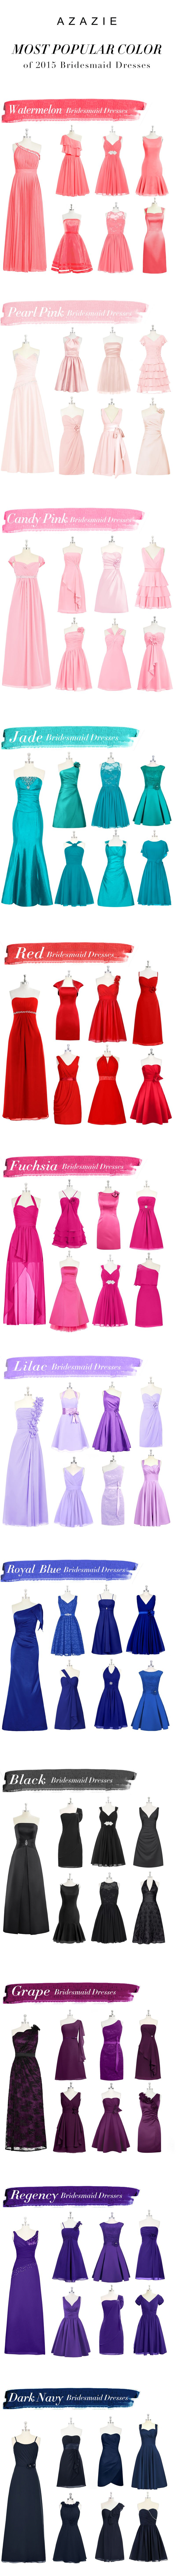 Azazie is the online destination for special occasion dresses find